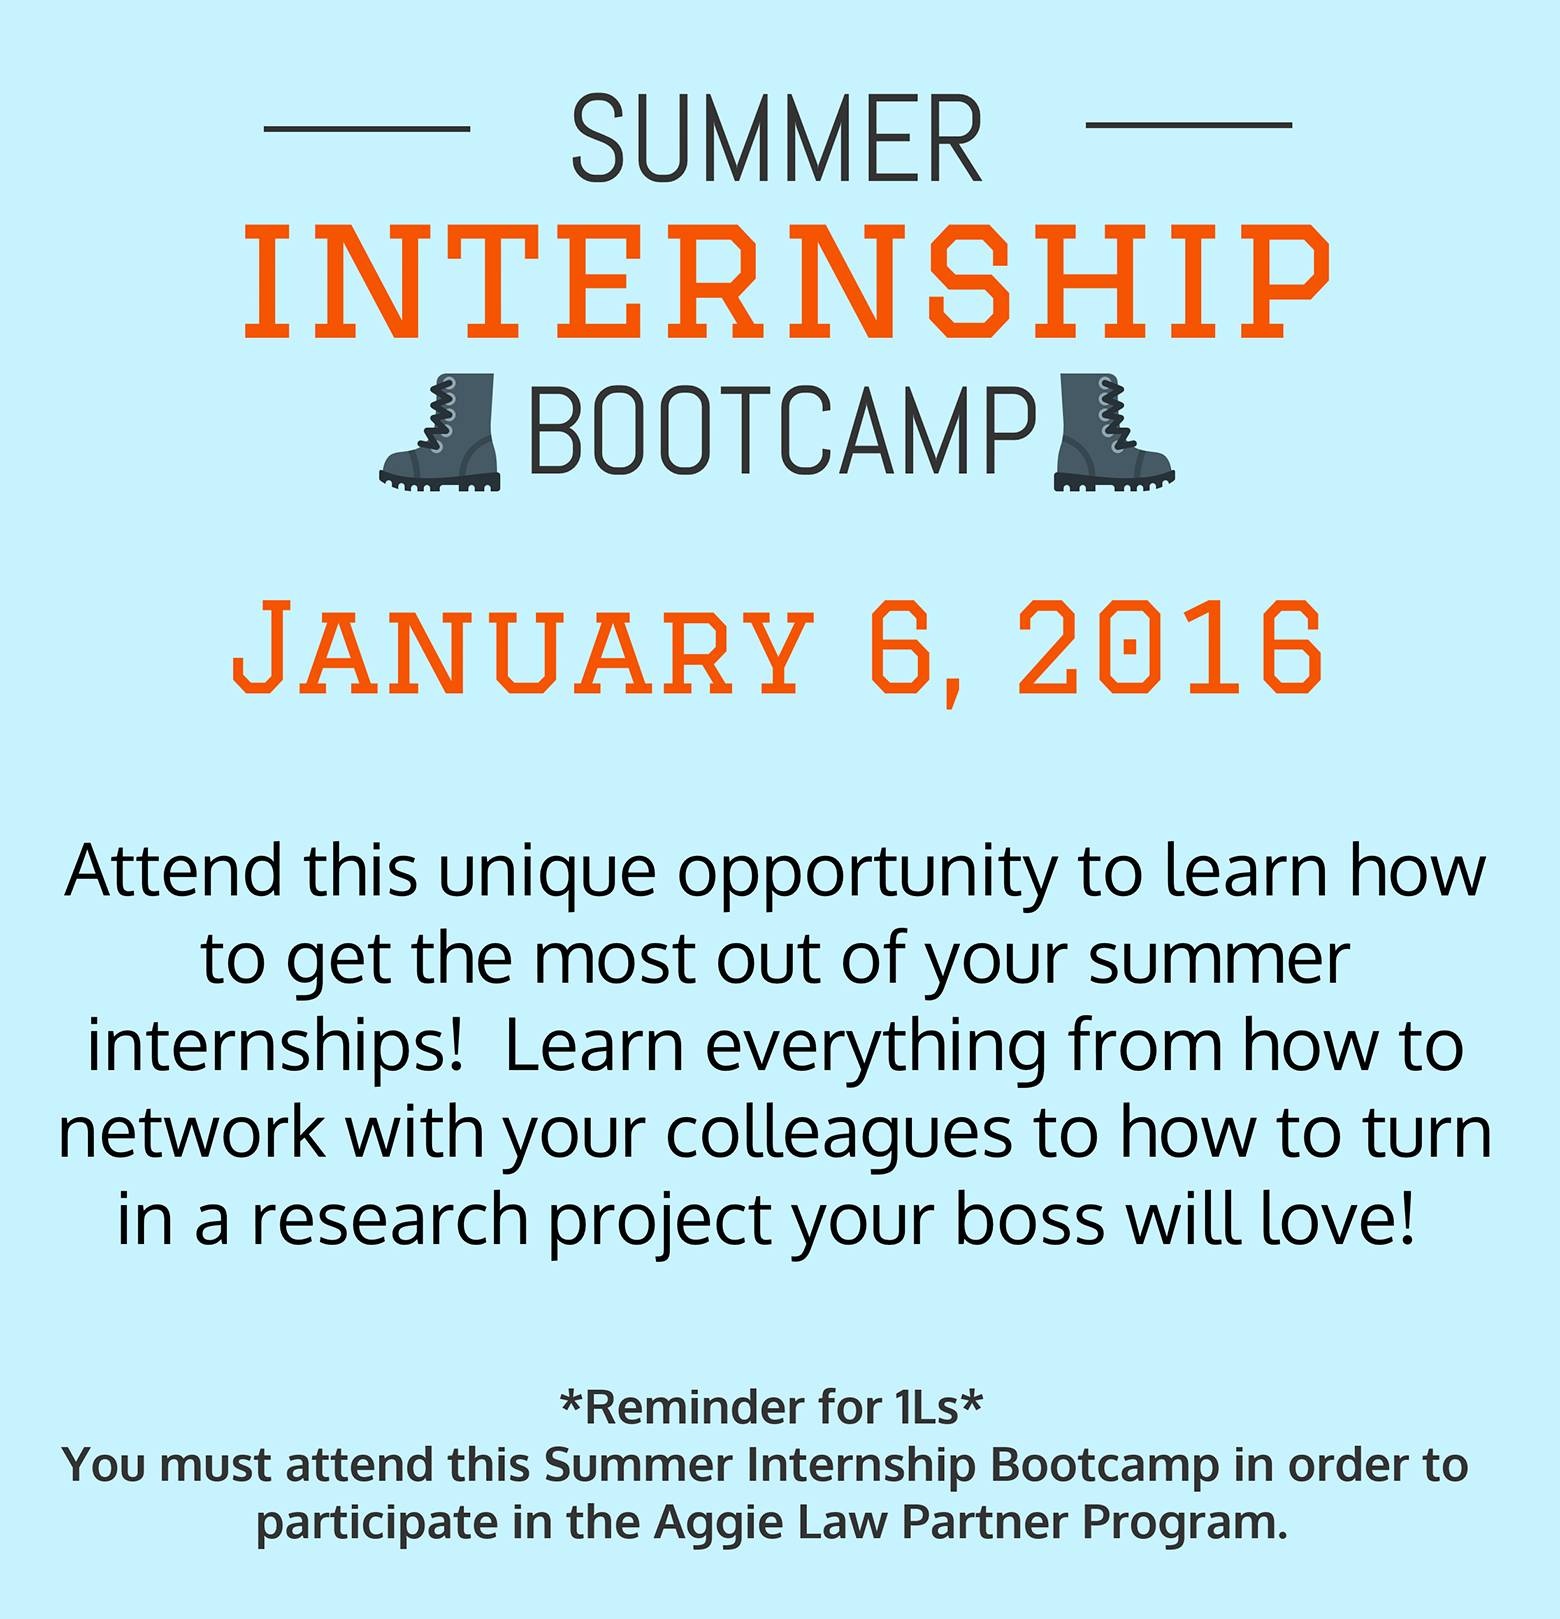 cs-summer-internship-bootcamp1